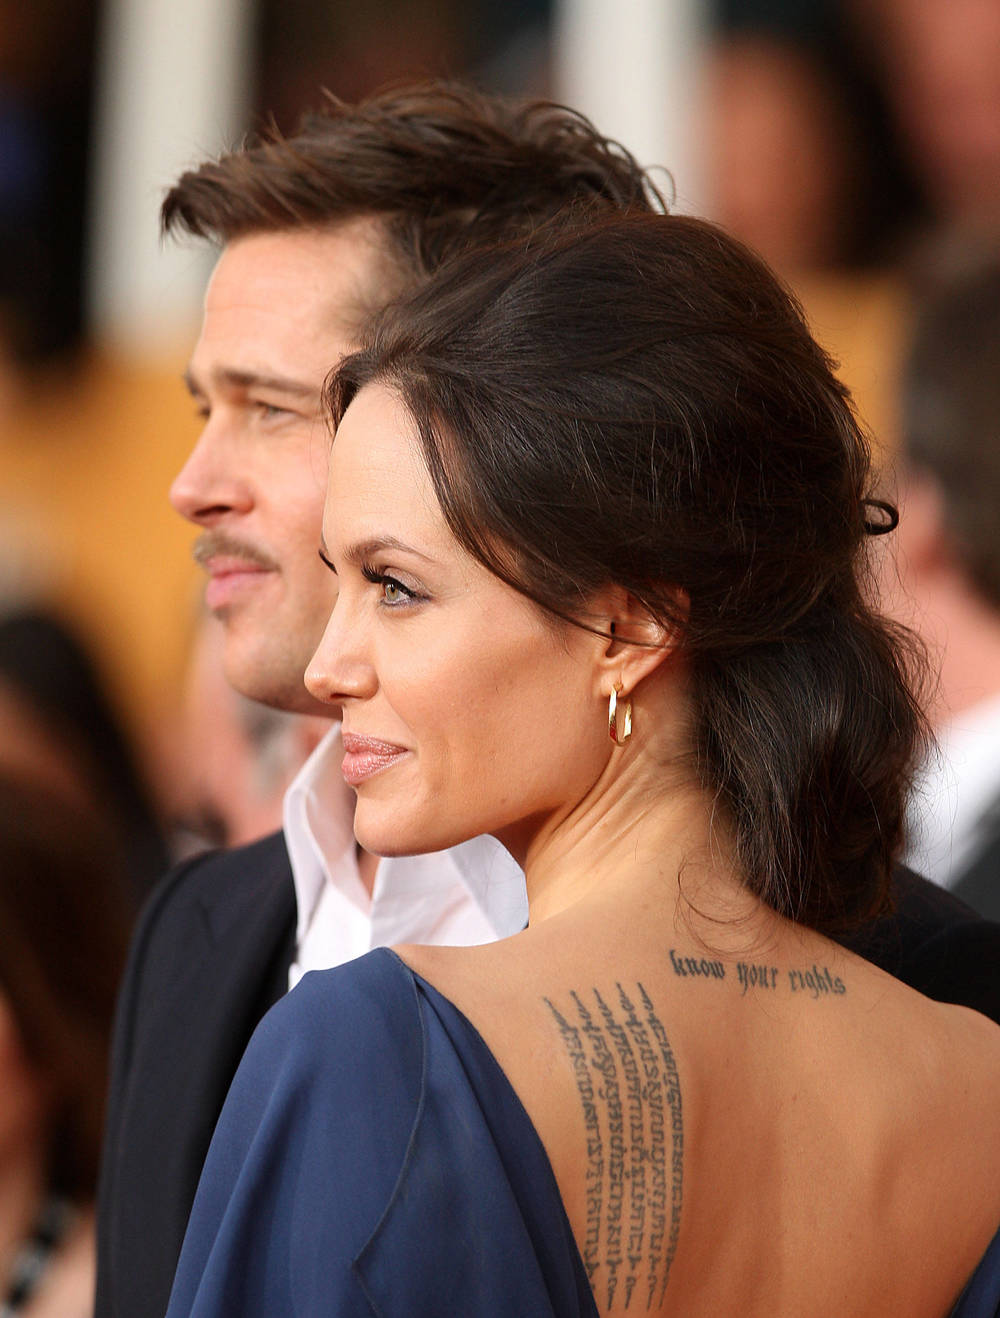 """I dropped my pants in a tattoo parlor in Amsterdam. I woke up in a waterbed with this funky-looking dragon with a blue tongue on my hip. I realised I made a mistake; so a few months later I got a cross to cover it. When my pants hang low, it looks like I'm wearing a dagger!"" — Angelina Jolie"